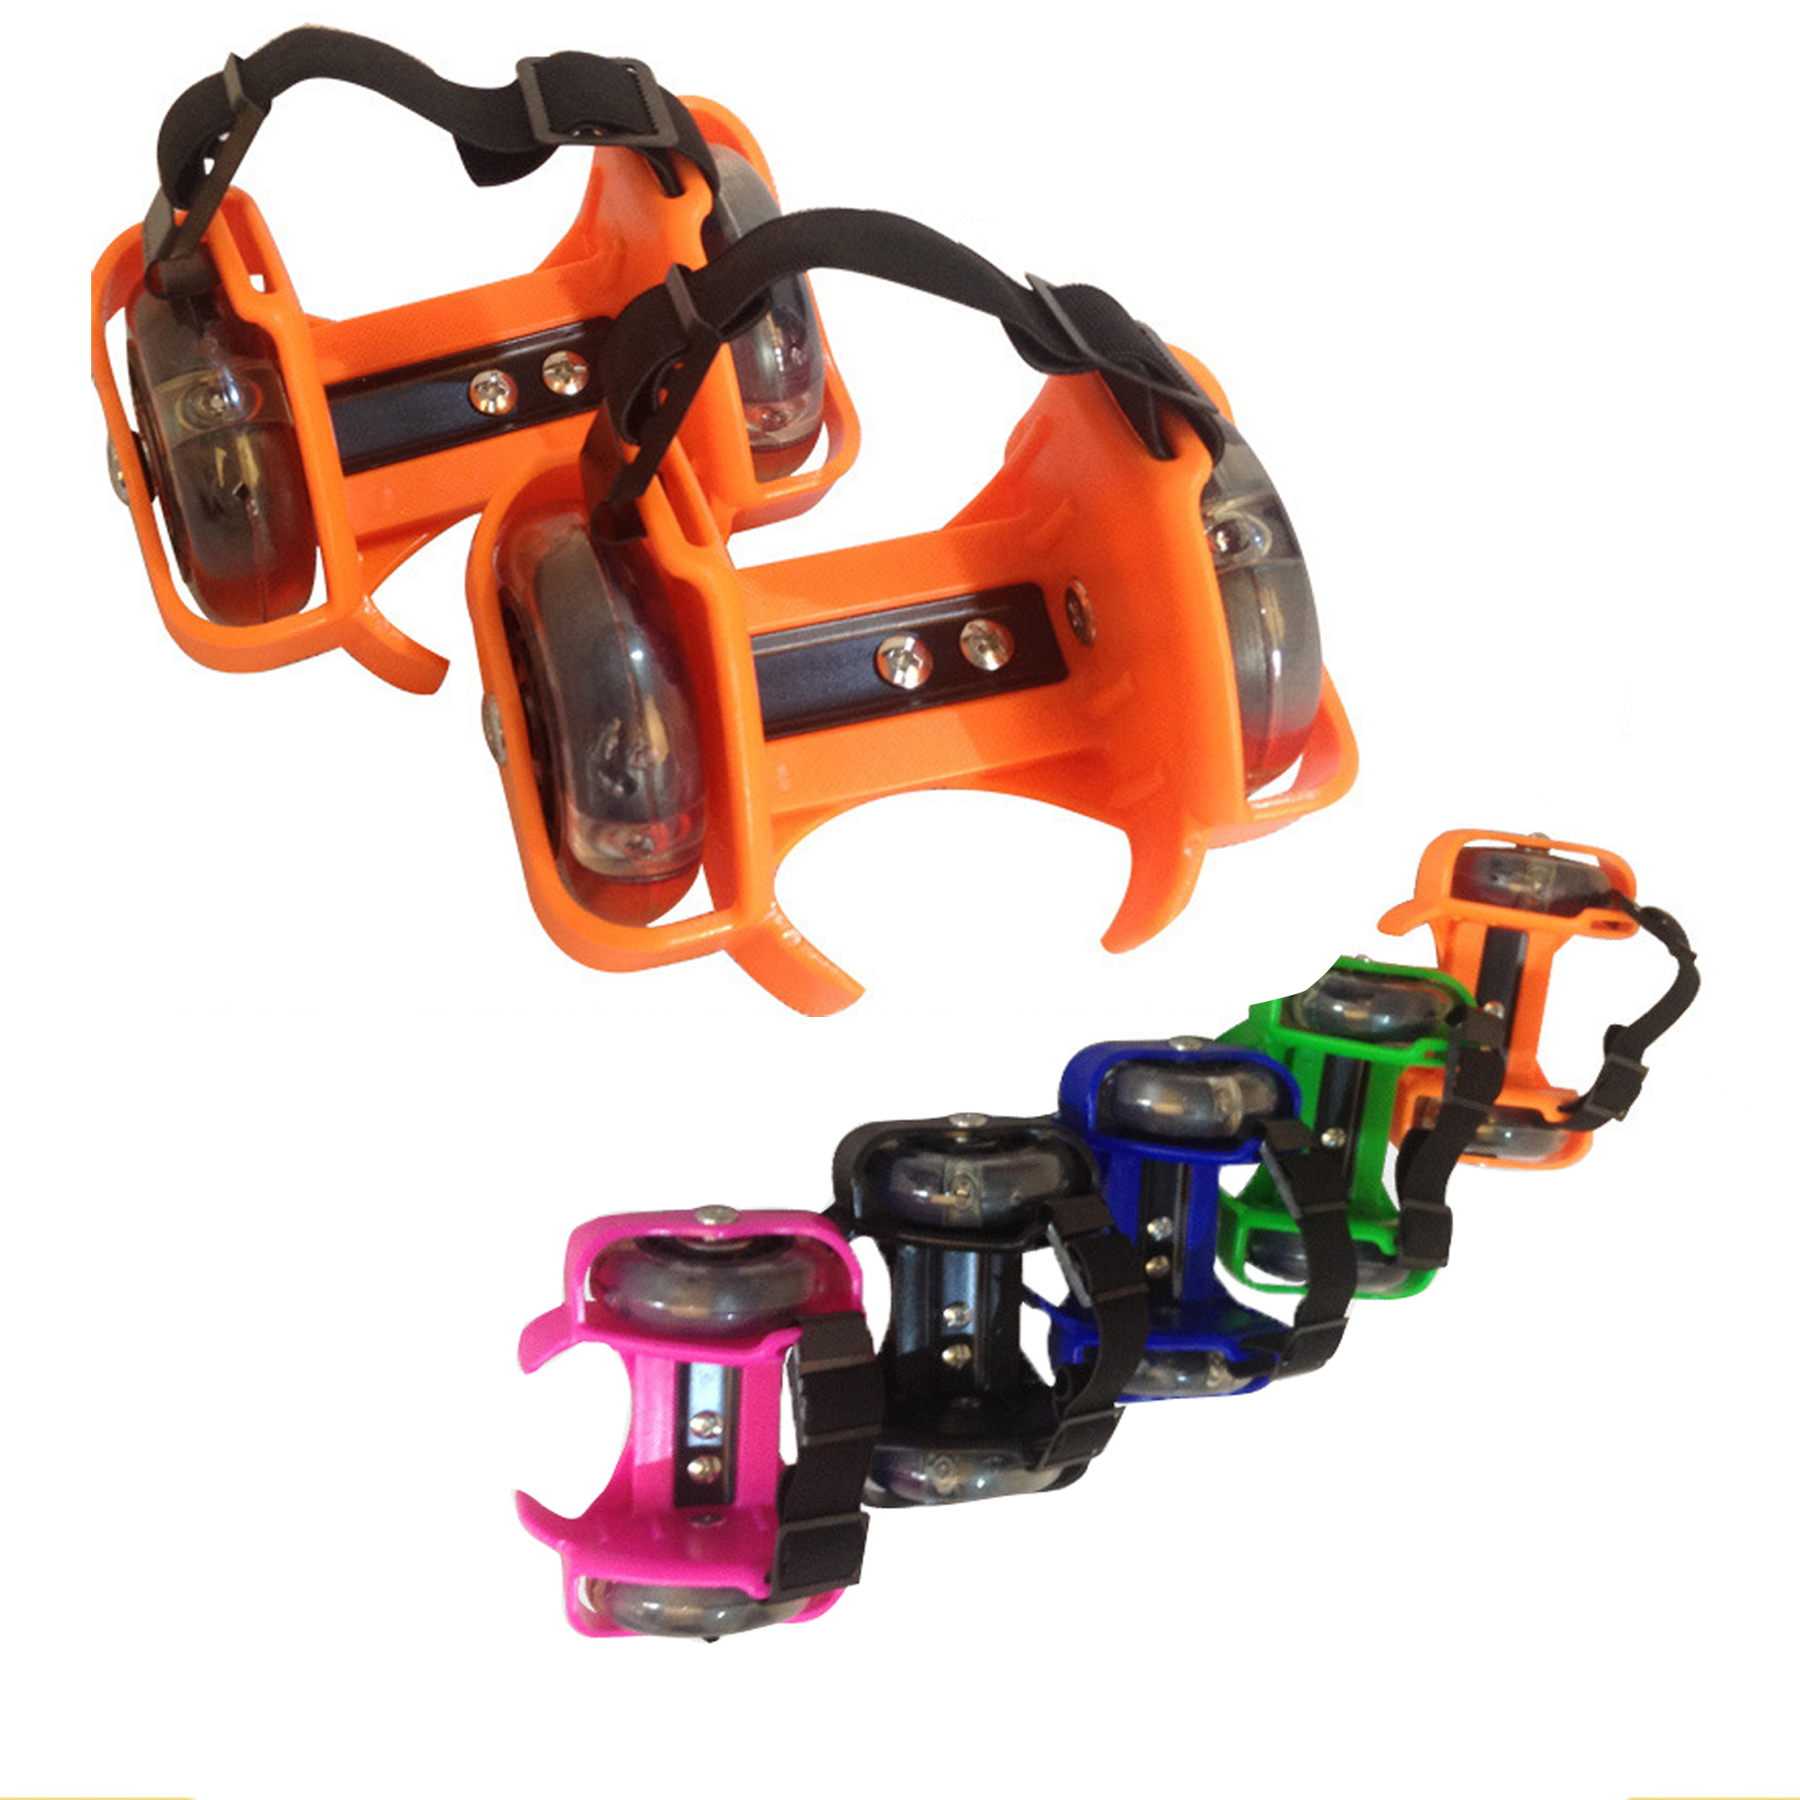 Roller shoes shop - Flash Wheel Skate Shoes Outdoor Sports Flash Runaway Pulley Wheel Flying Shoes Luminous Wheel Light Roller Shoes For Kids